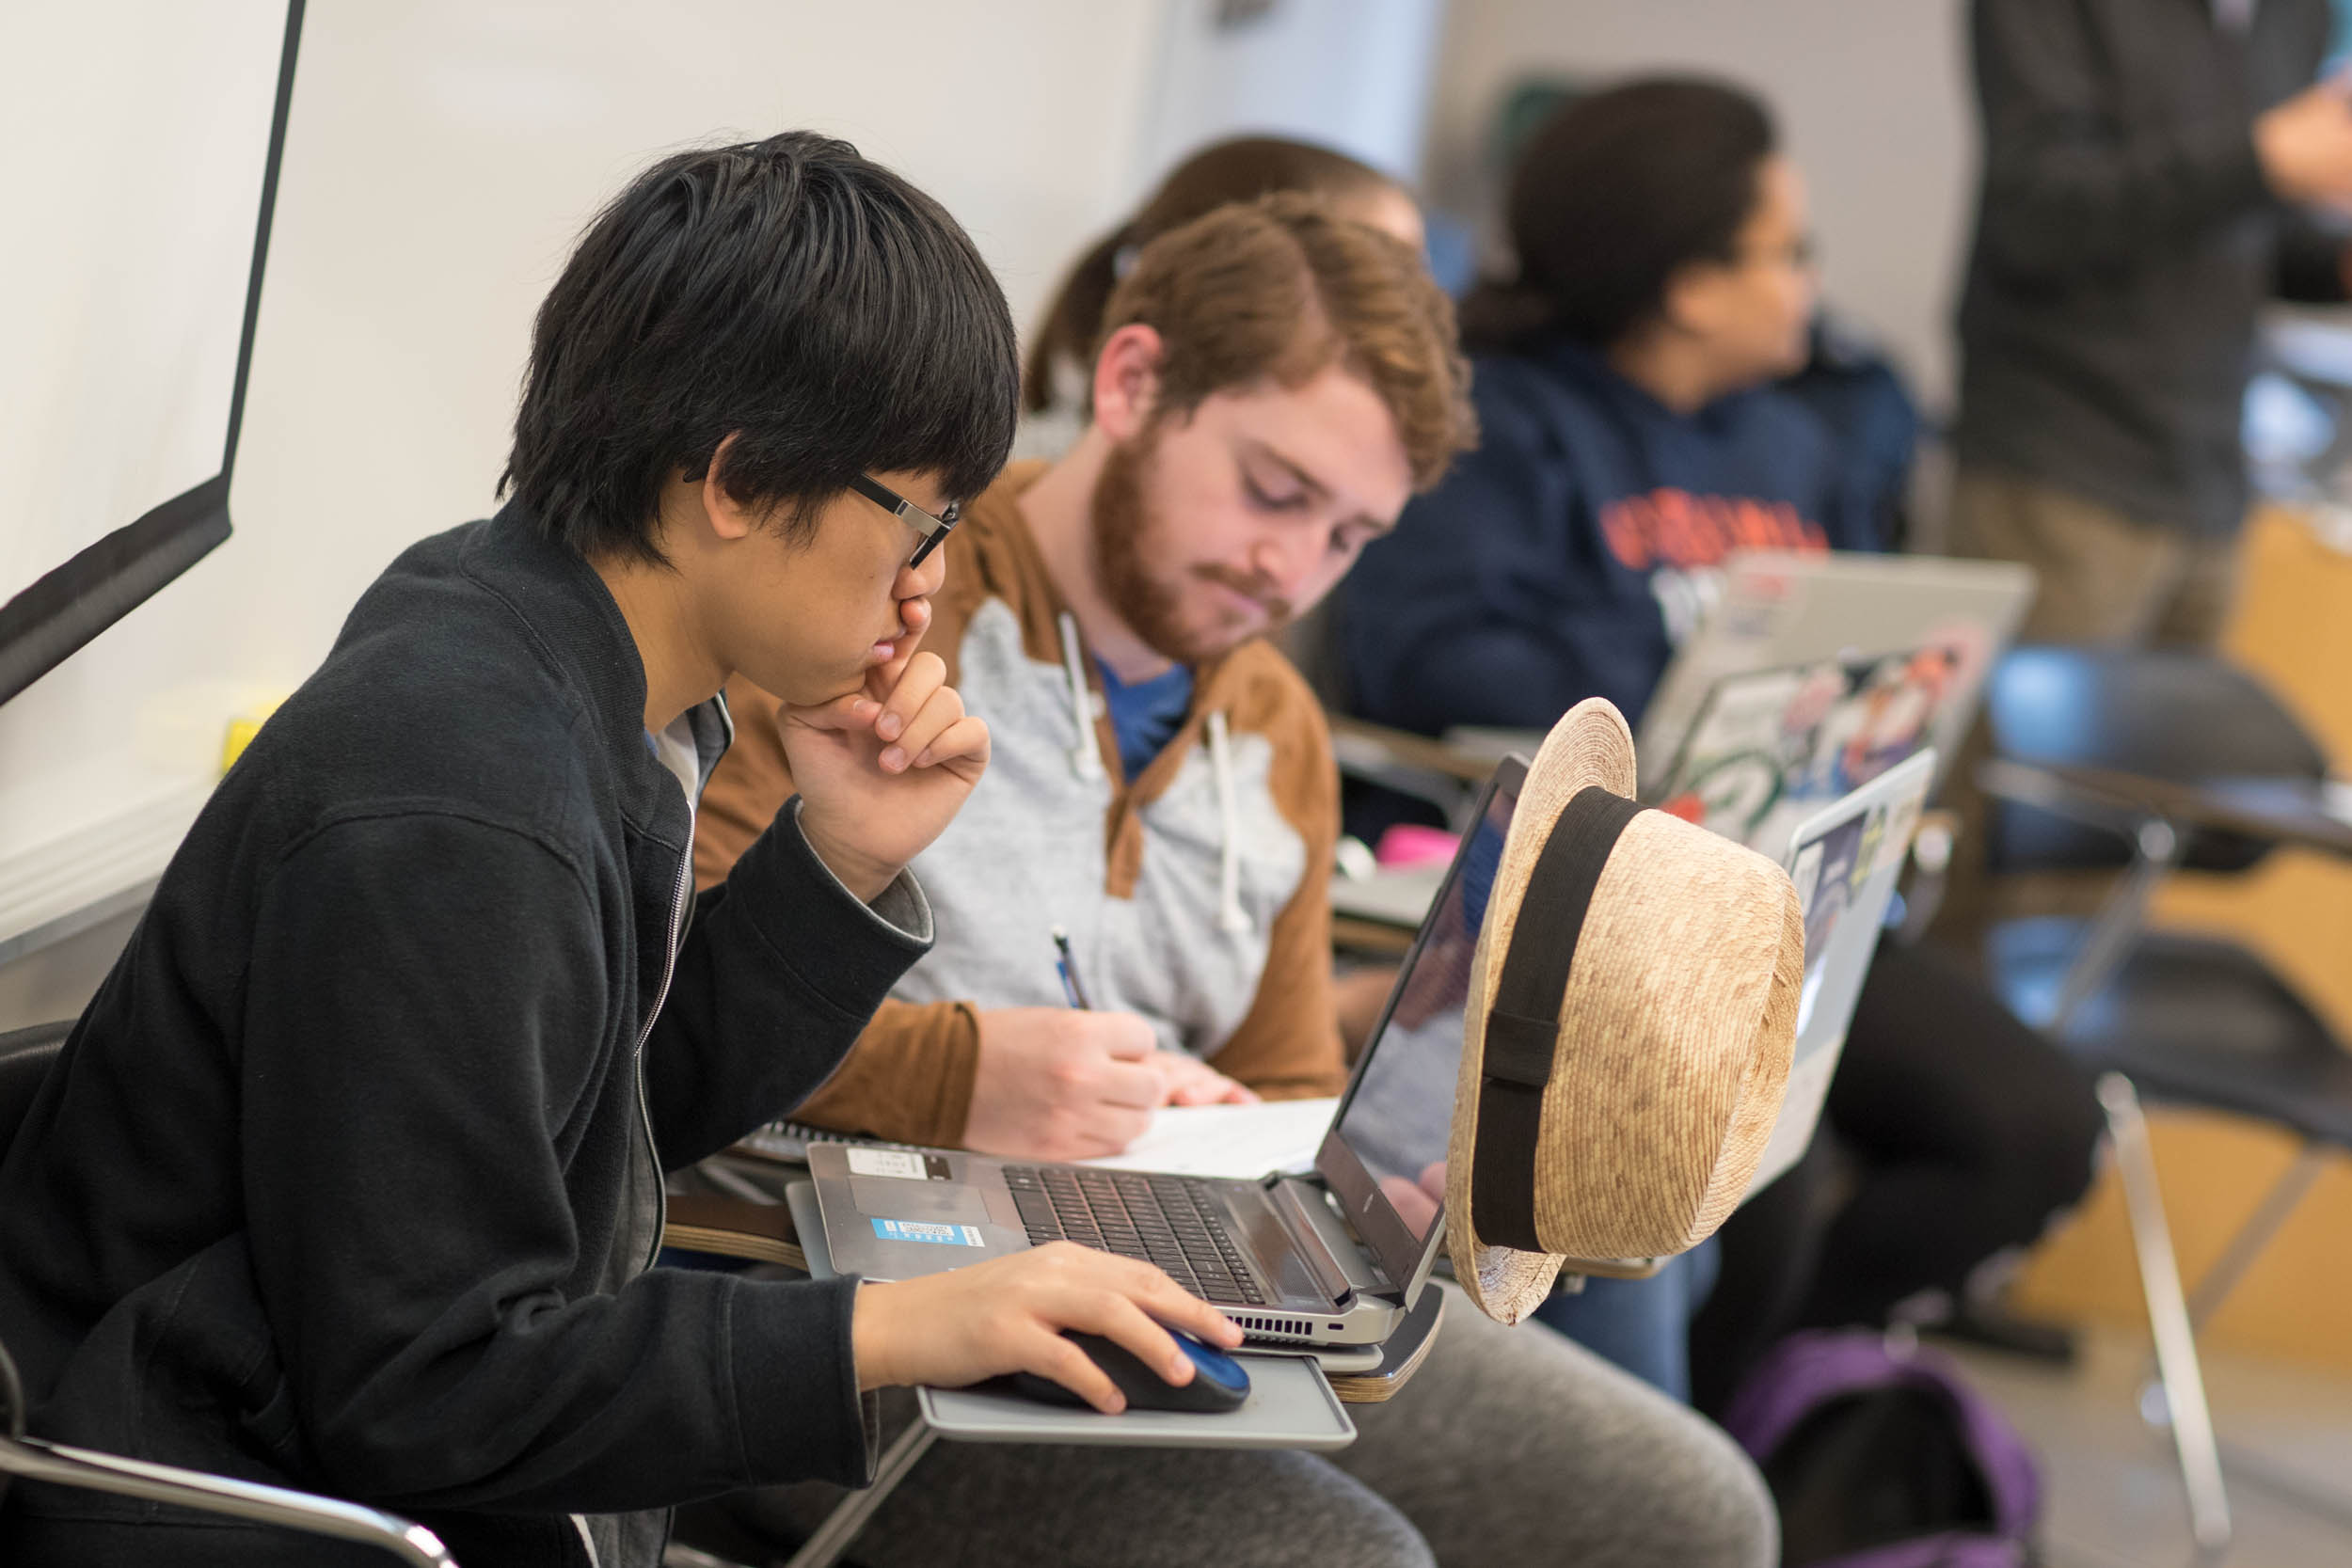 Thuy Vuong, seated in his class at UVA, is taking the course with his brother, Huan, who is a member of The Tribe. (Photo by Sanjay Suchak, University Communications)